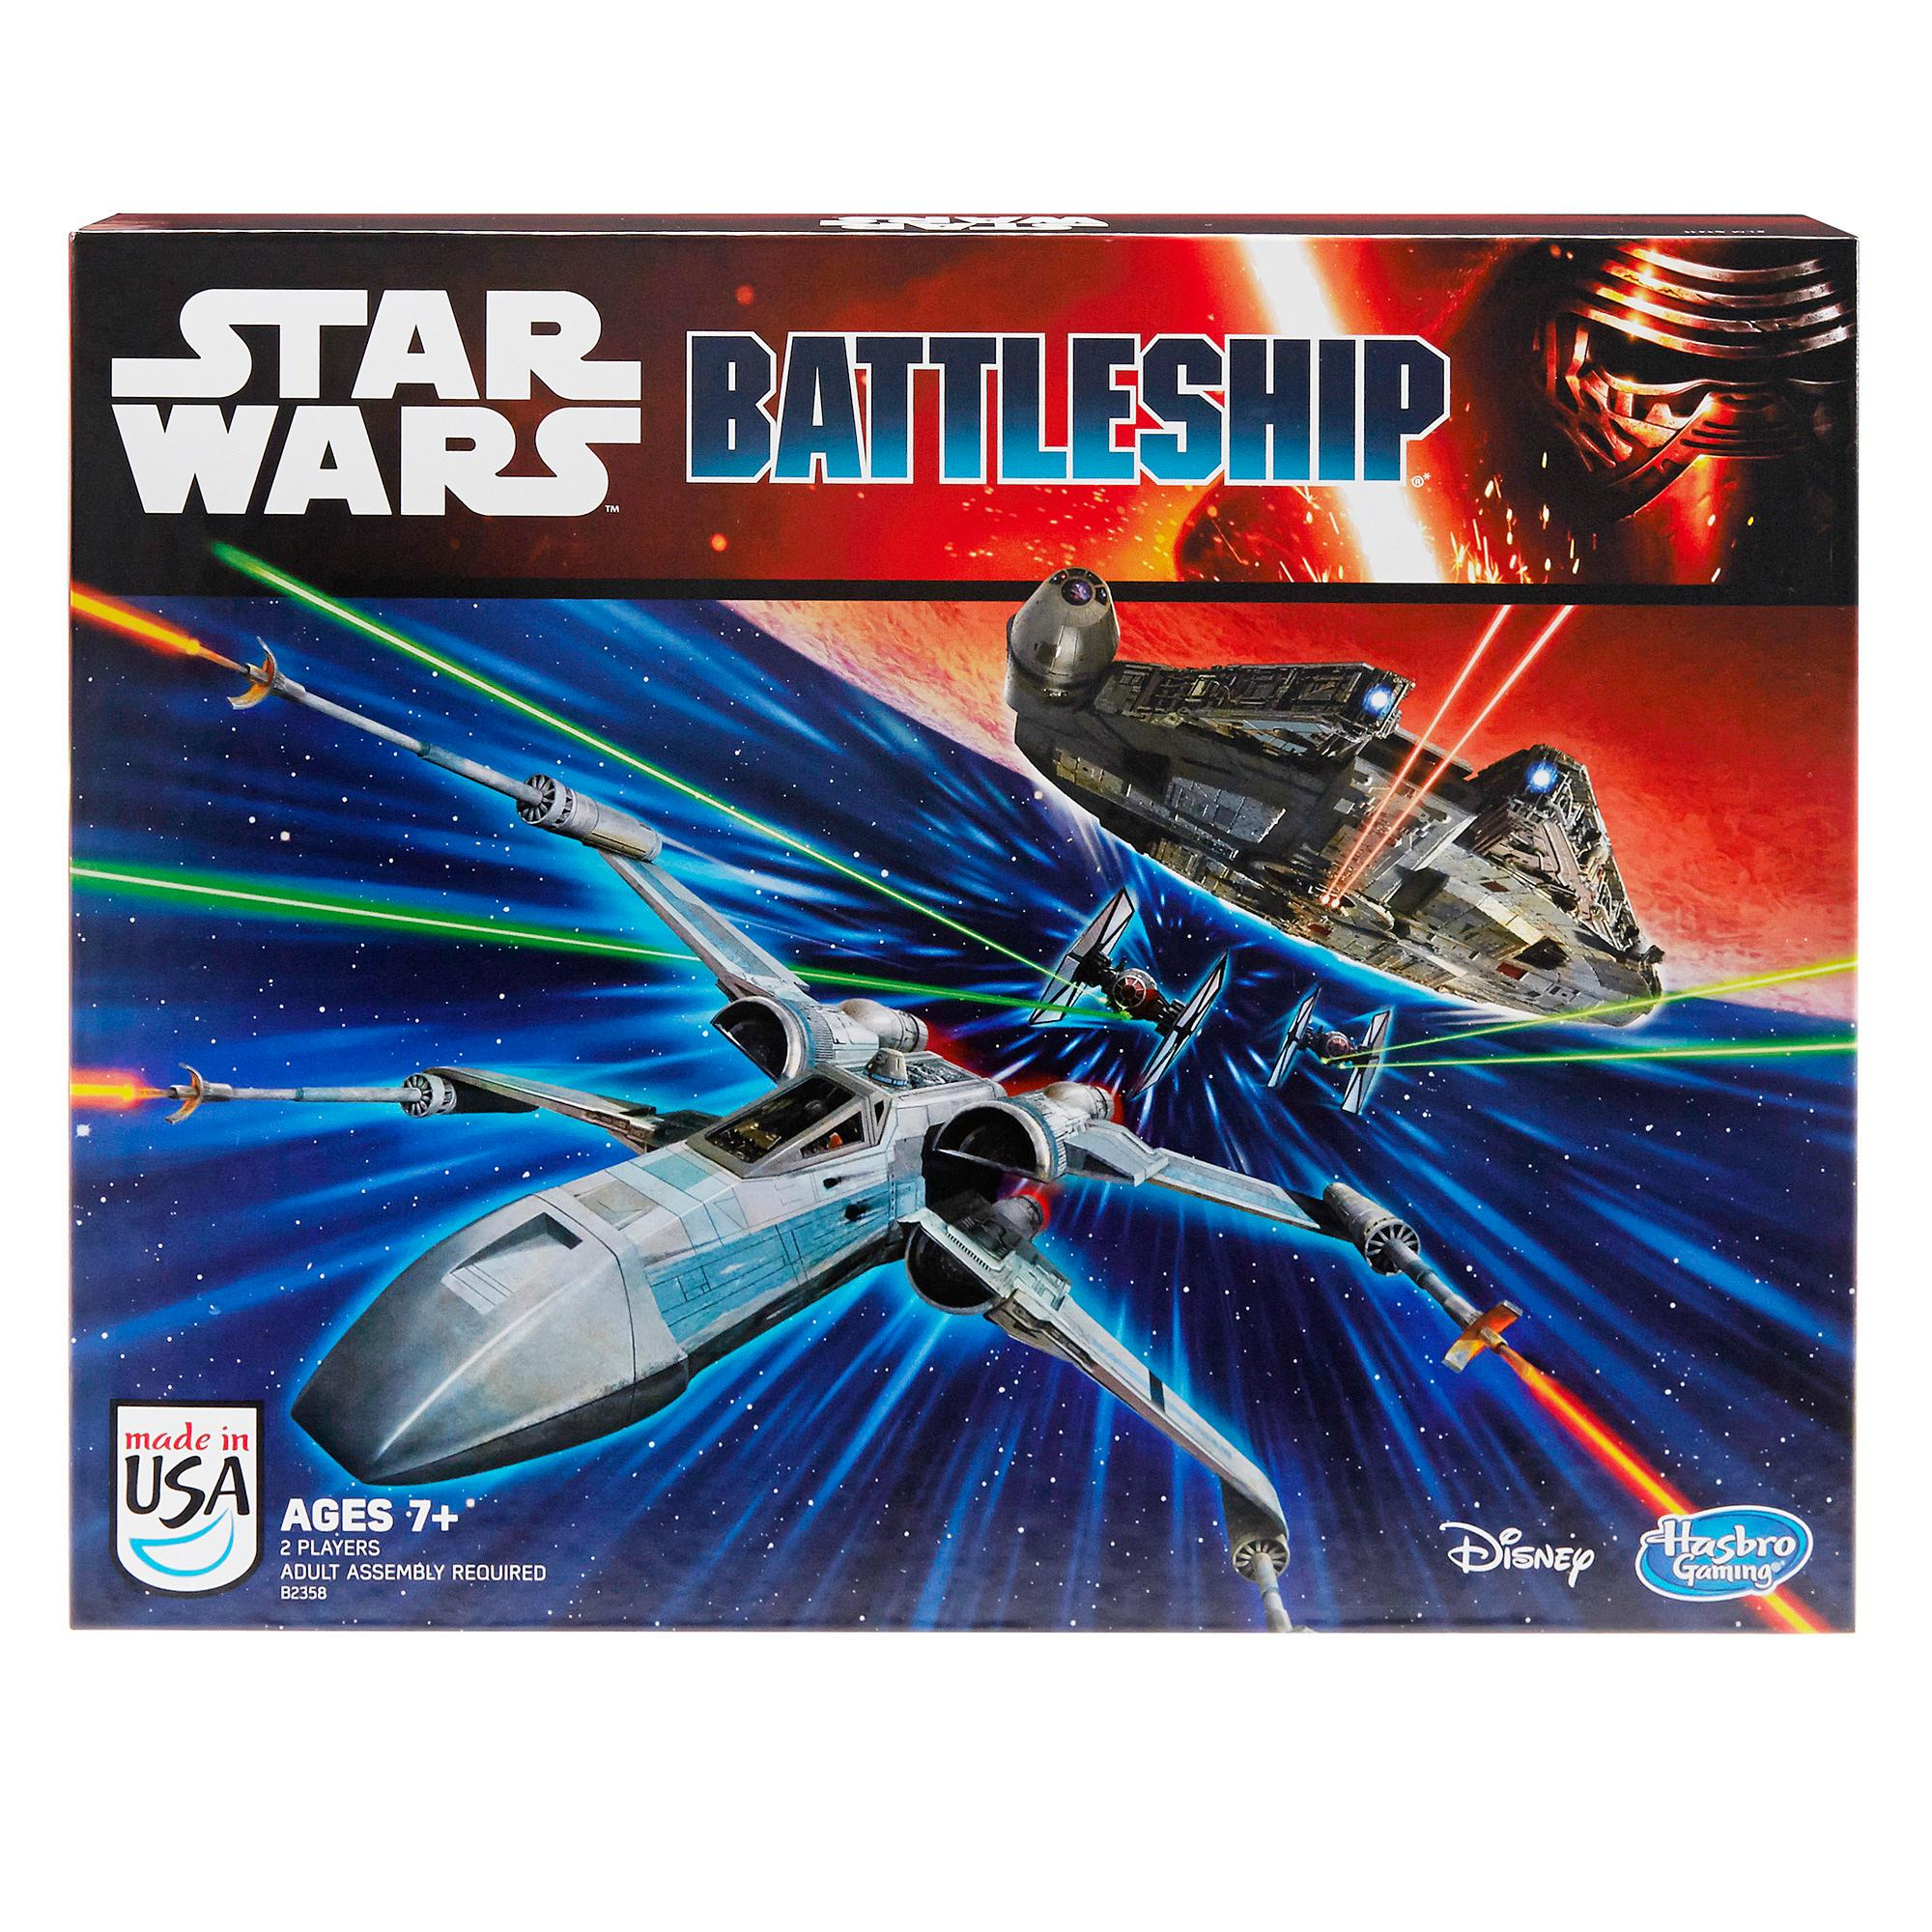 Star Wars Toy Game : Amazon battleship star wars edition game toys games